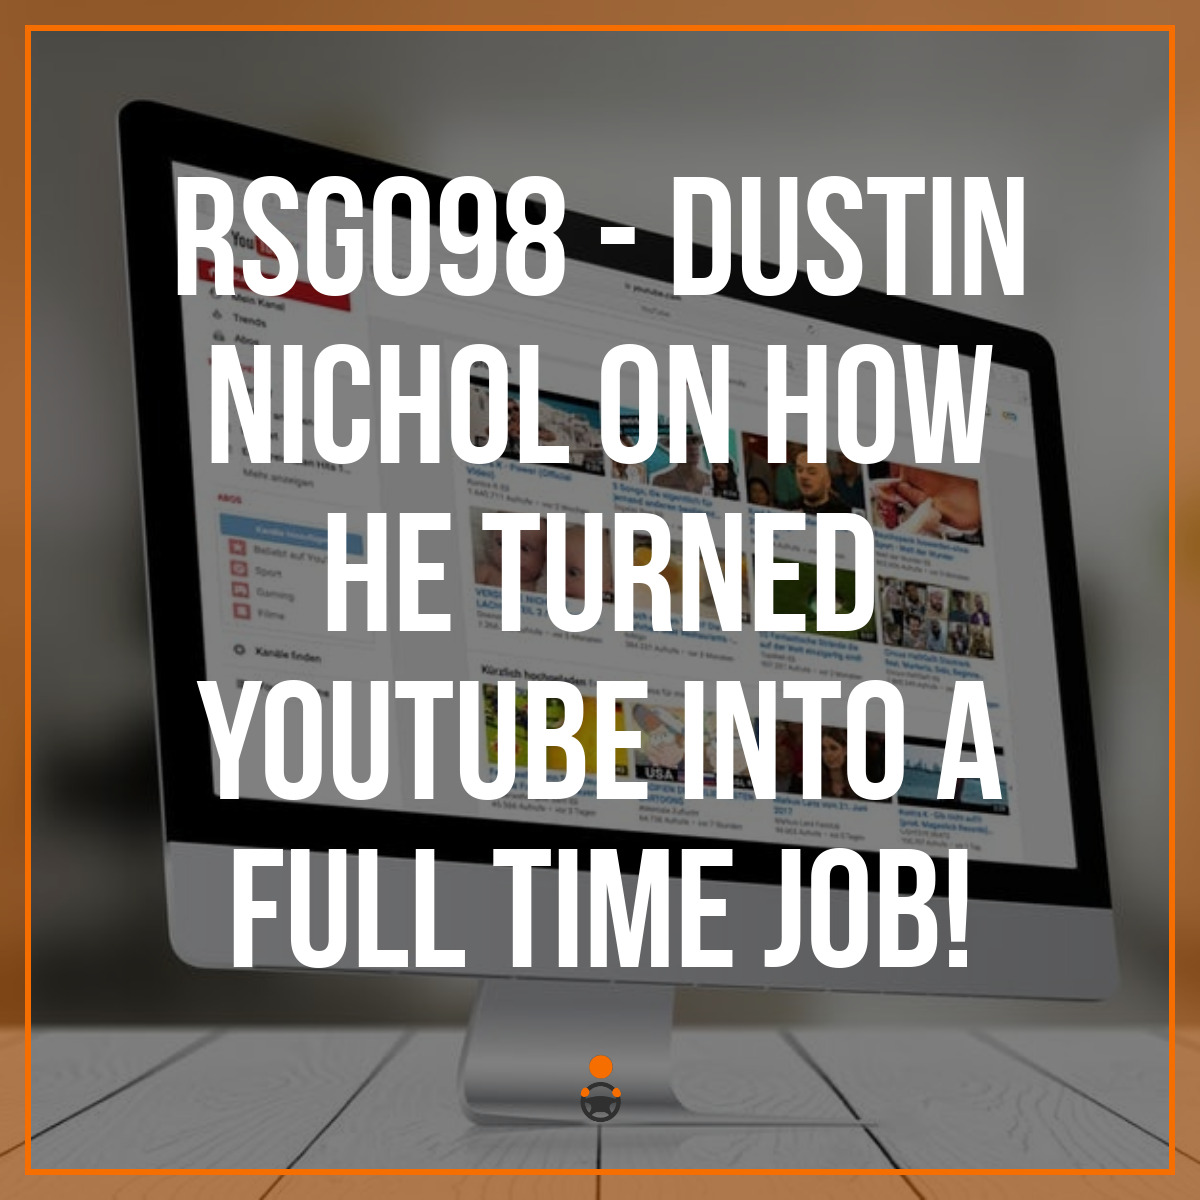 RSG098 – Dustin Nicol on How He Turned YouTube into a Full Time Job!